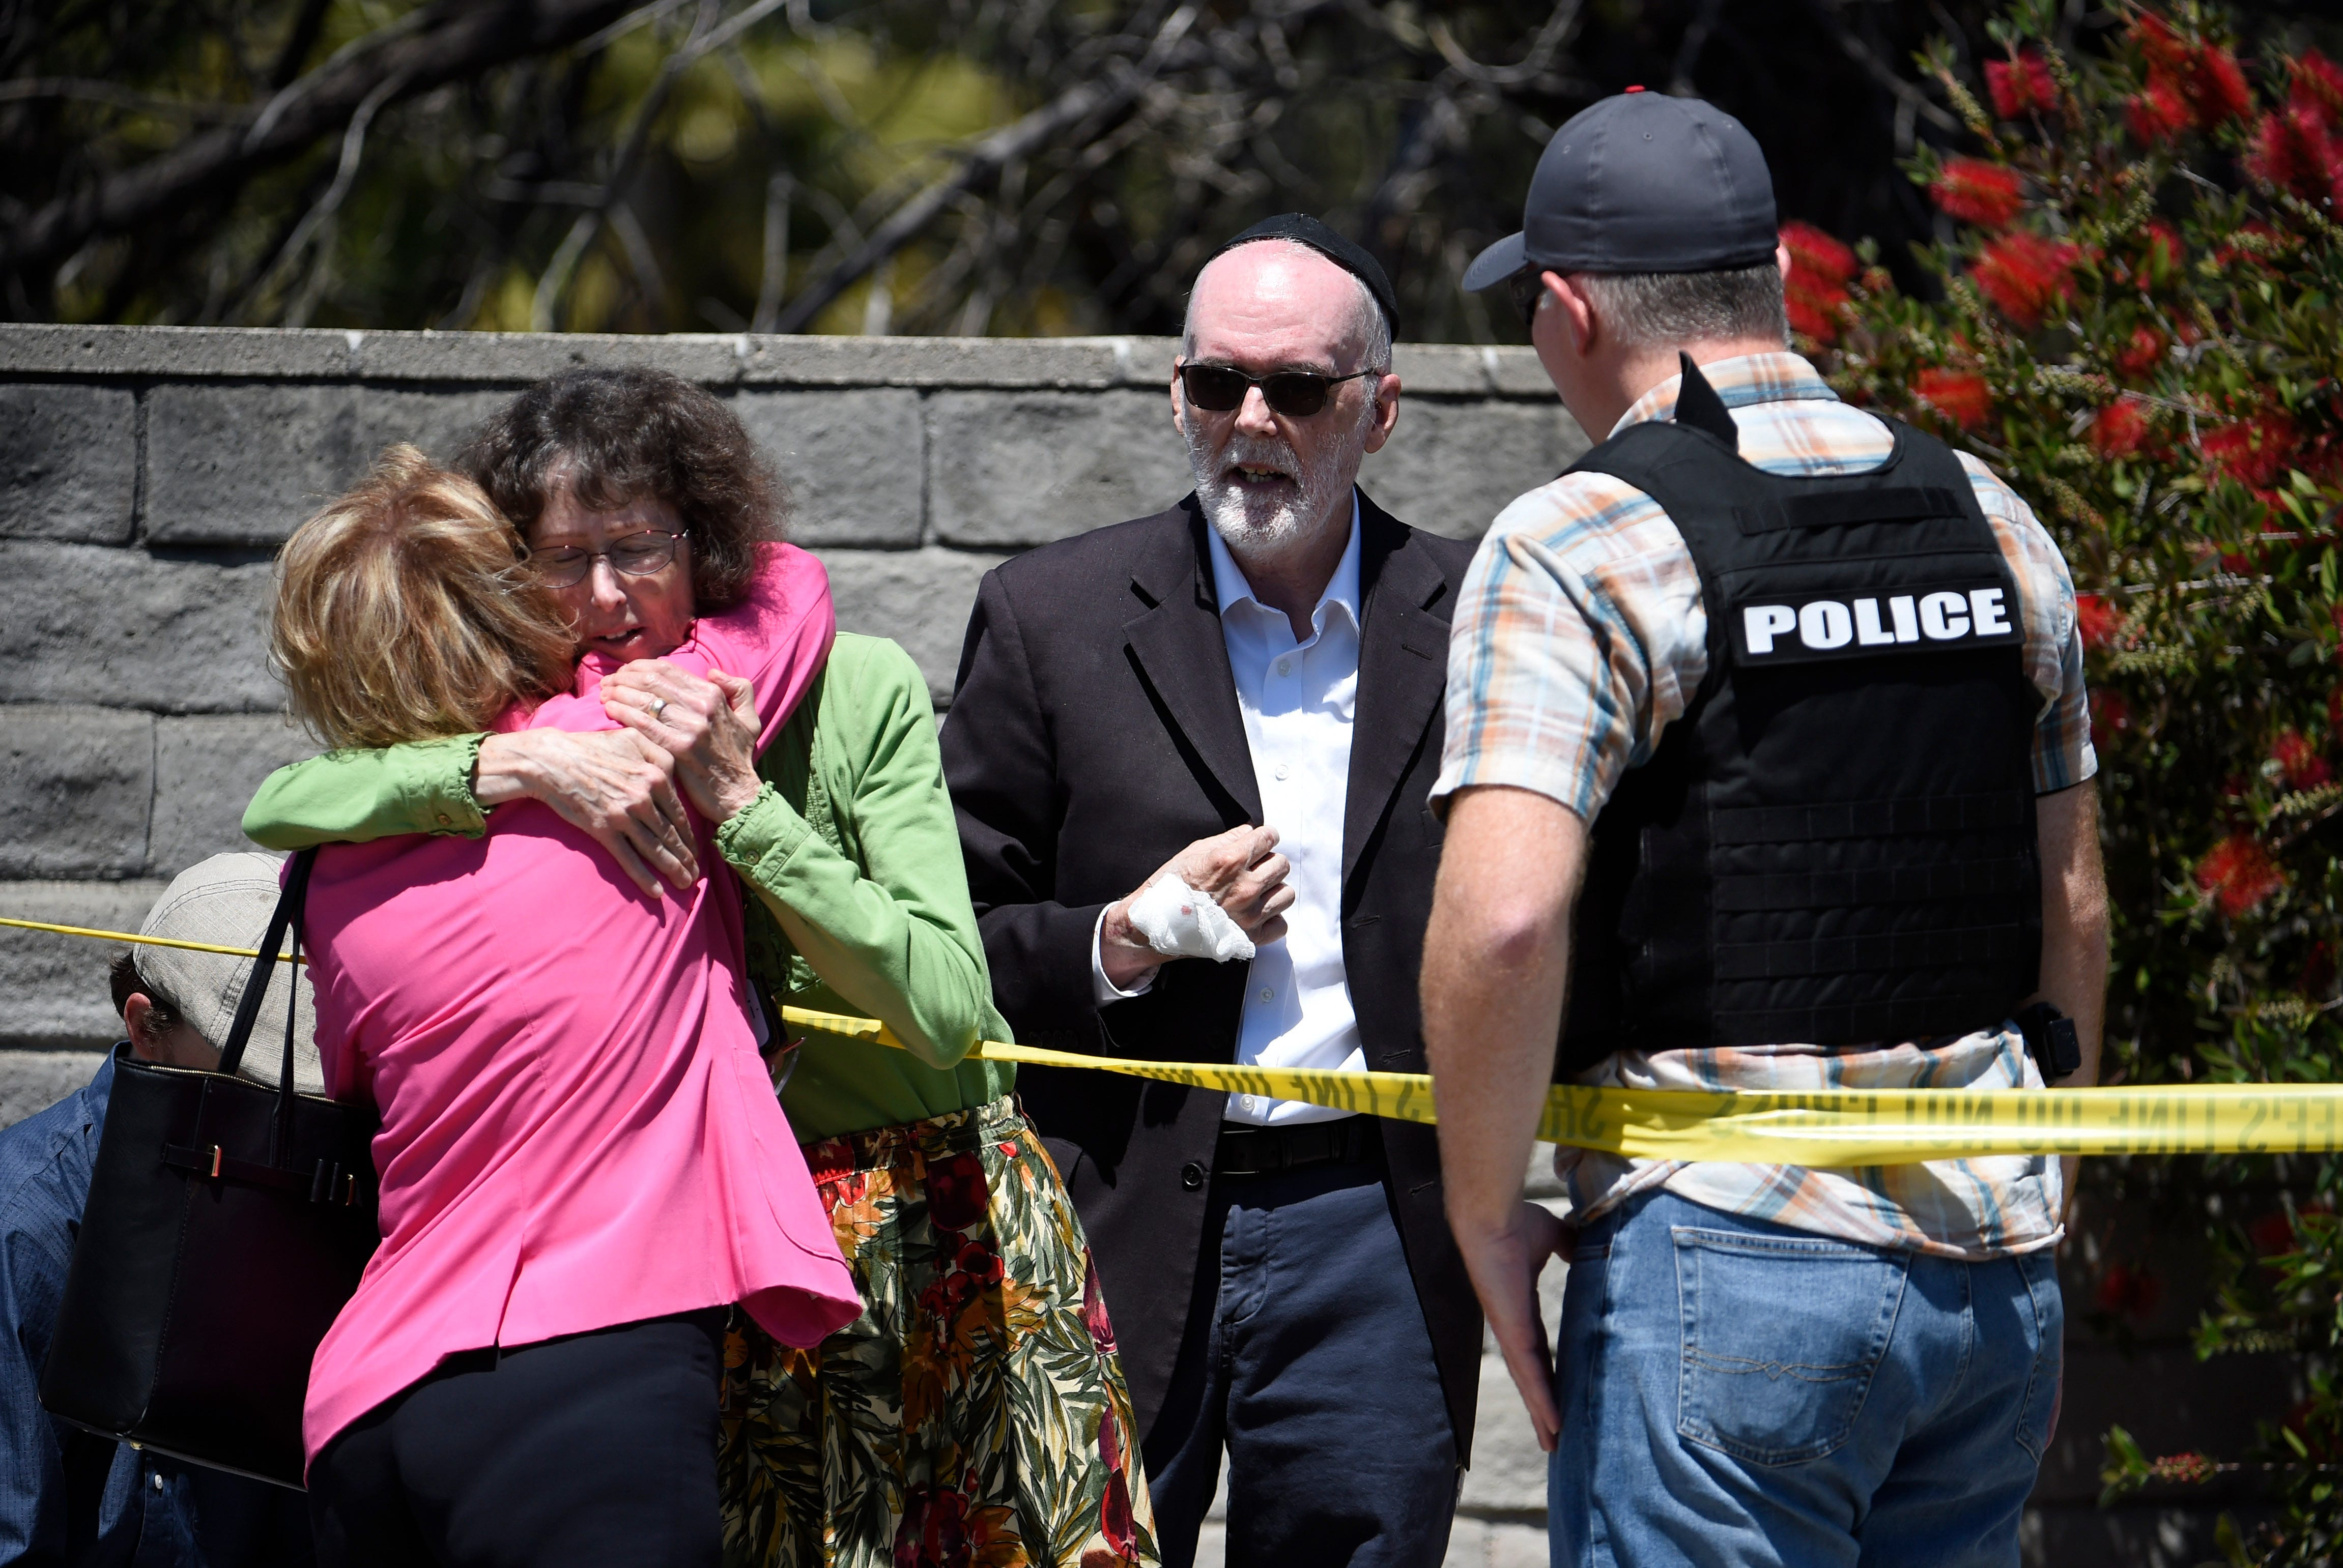 Two people hug as another talks to a San Diego County Sheriff's deputy outside of the Chabad of Poway Synagogue Saturday, April 27, 2019, in Poway, Calif. Several people have been shot and injured at a synagogue in San Diego, California, on Saturday, said San Diego County authorities.